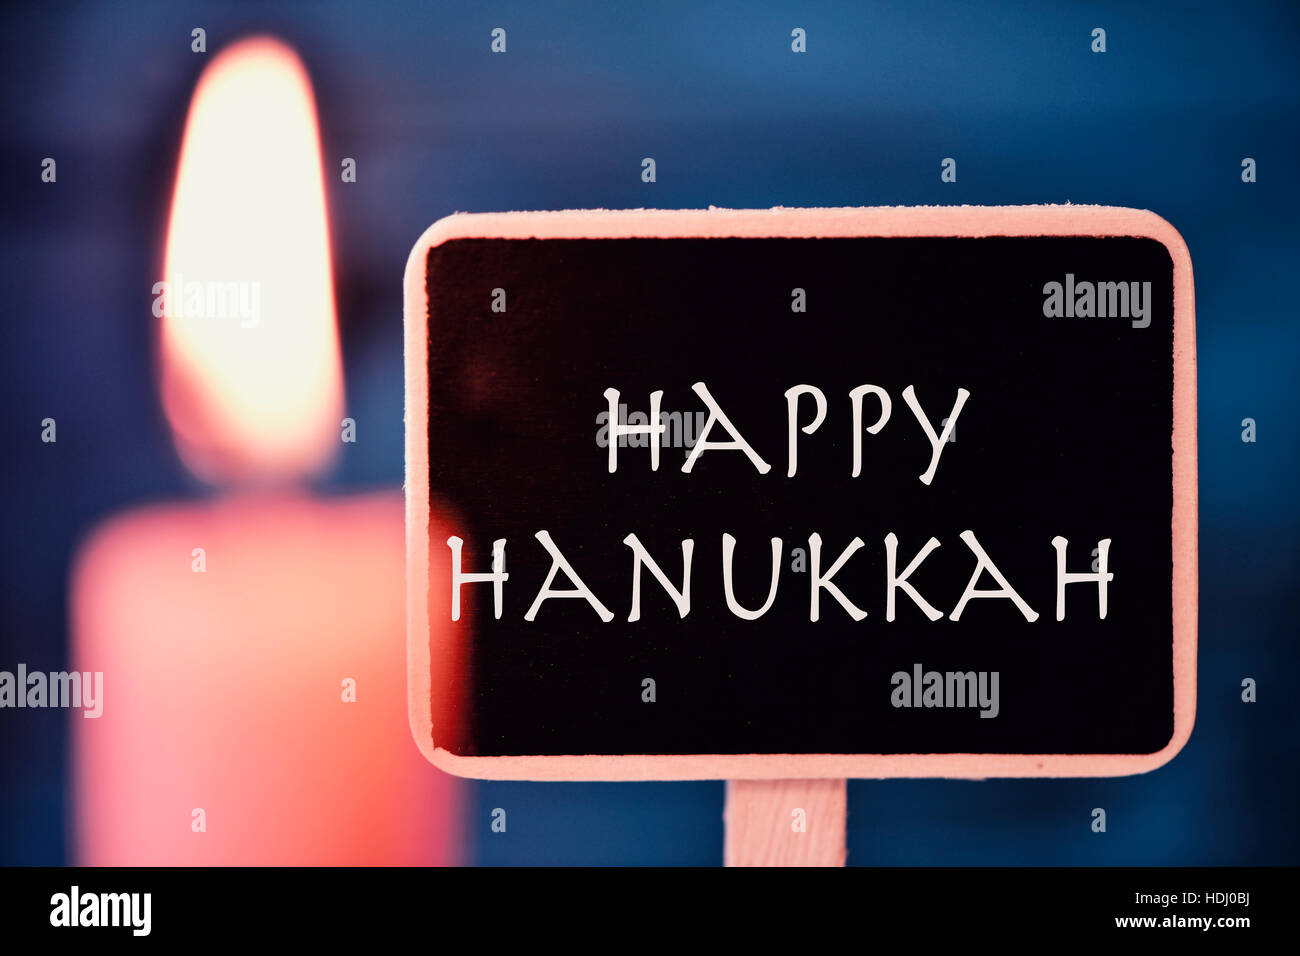 closeup of a black signboard with the text happy Hanukkah, for the Jewish Festival of Lights, and a lit candle - Stock Image